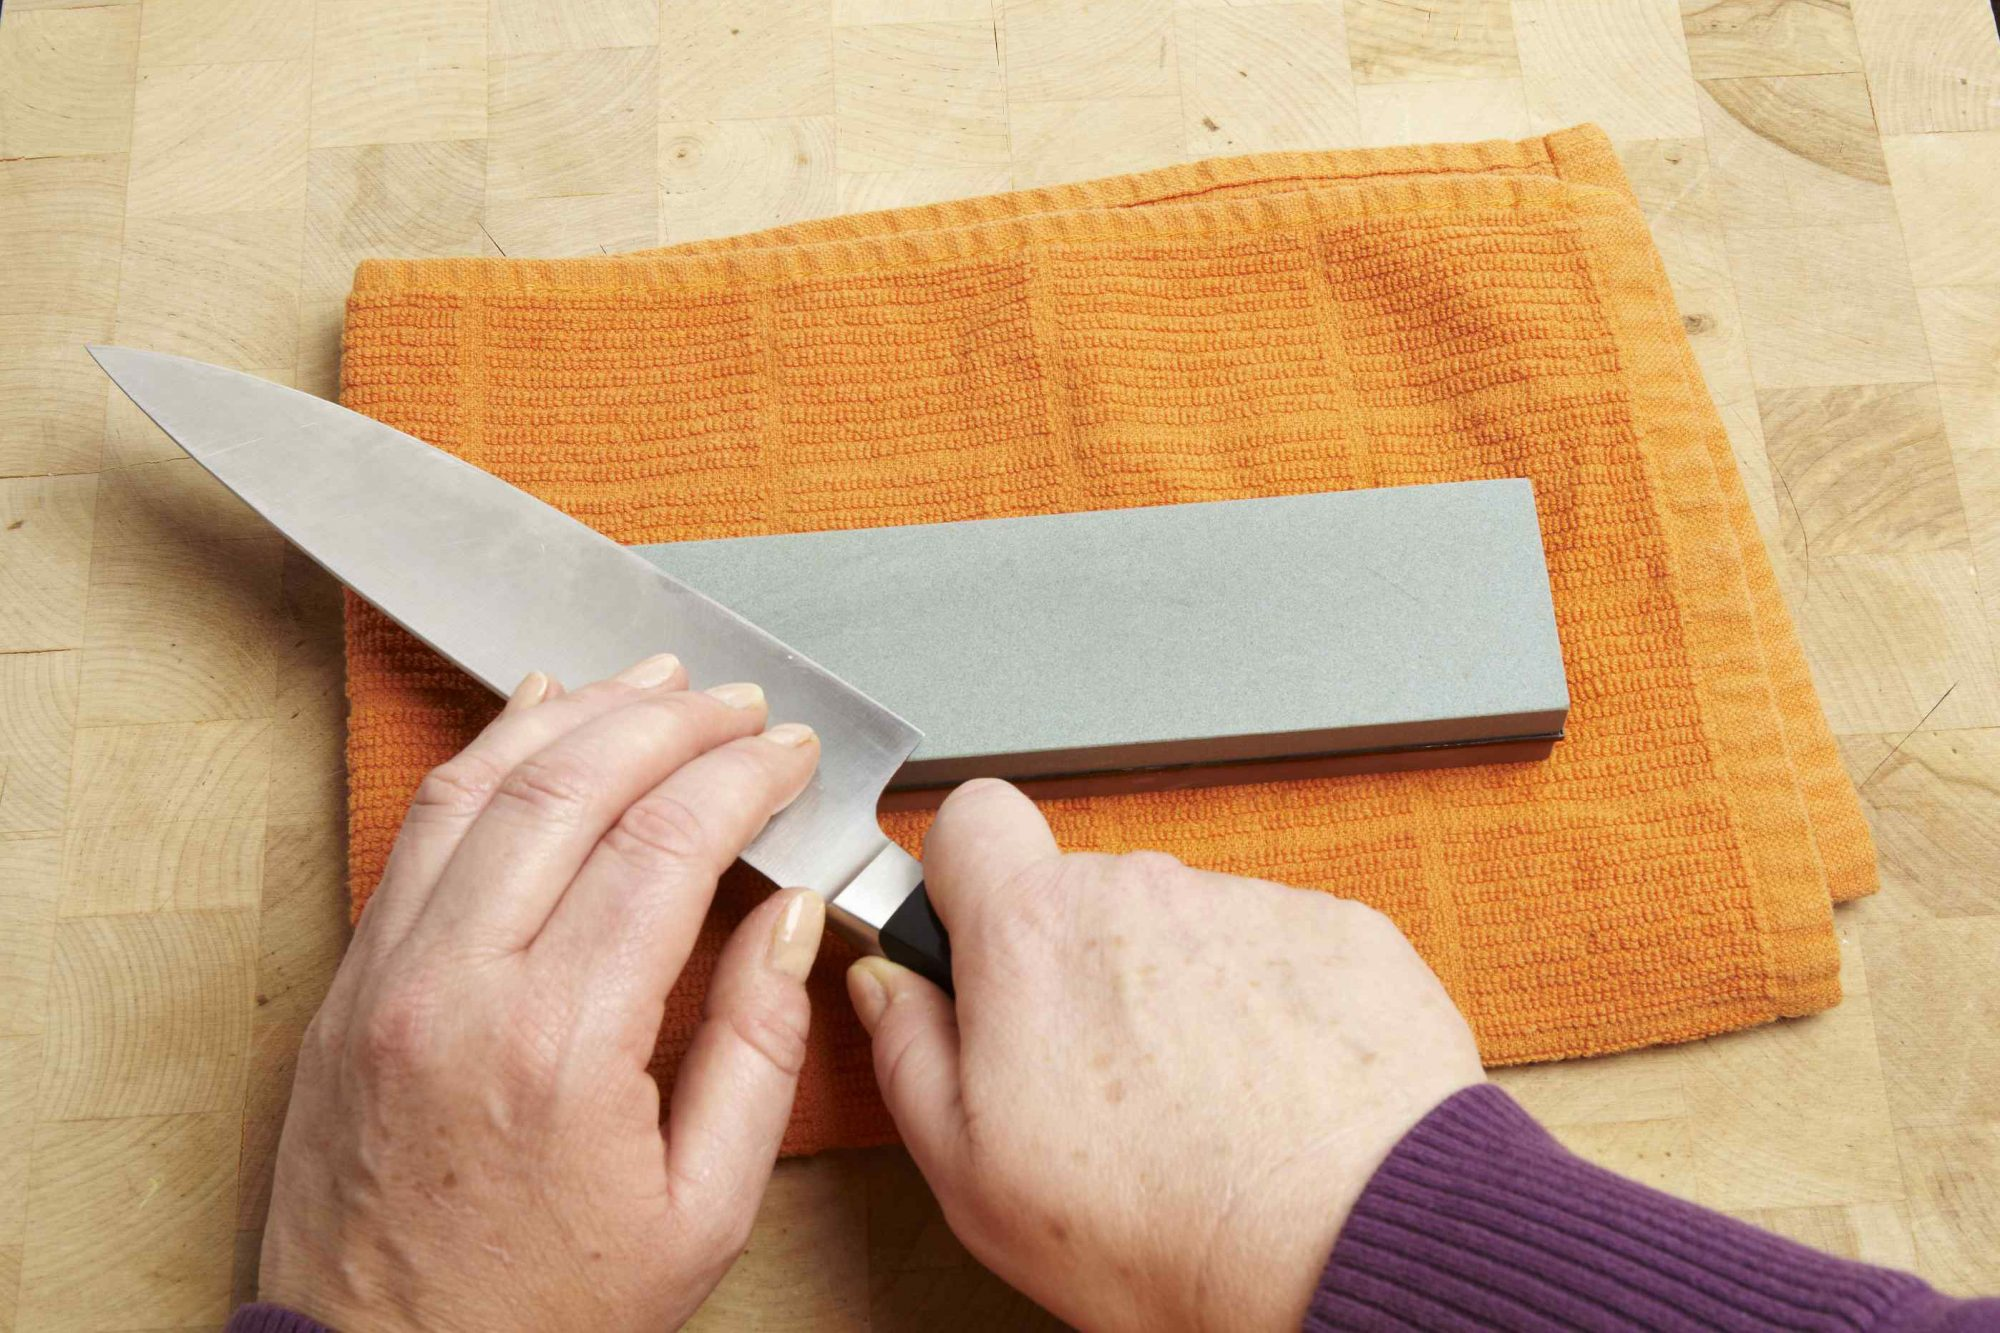 Person with chef's knife being sharpened on sharpening stone